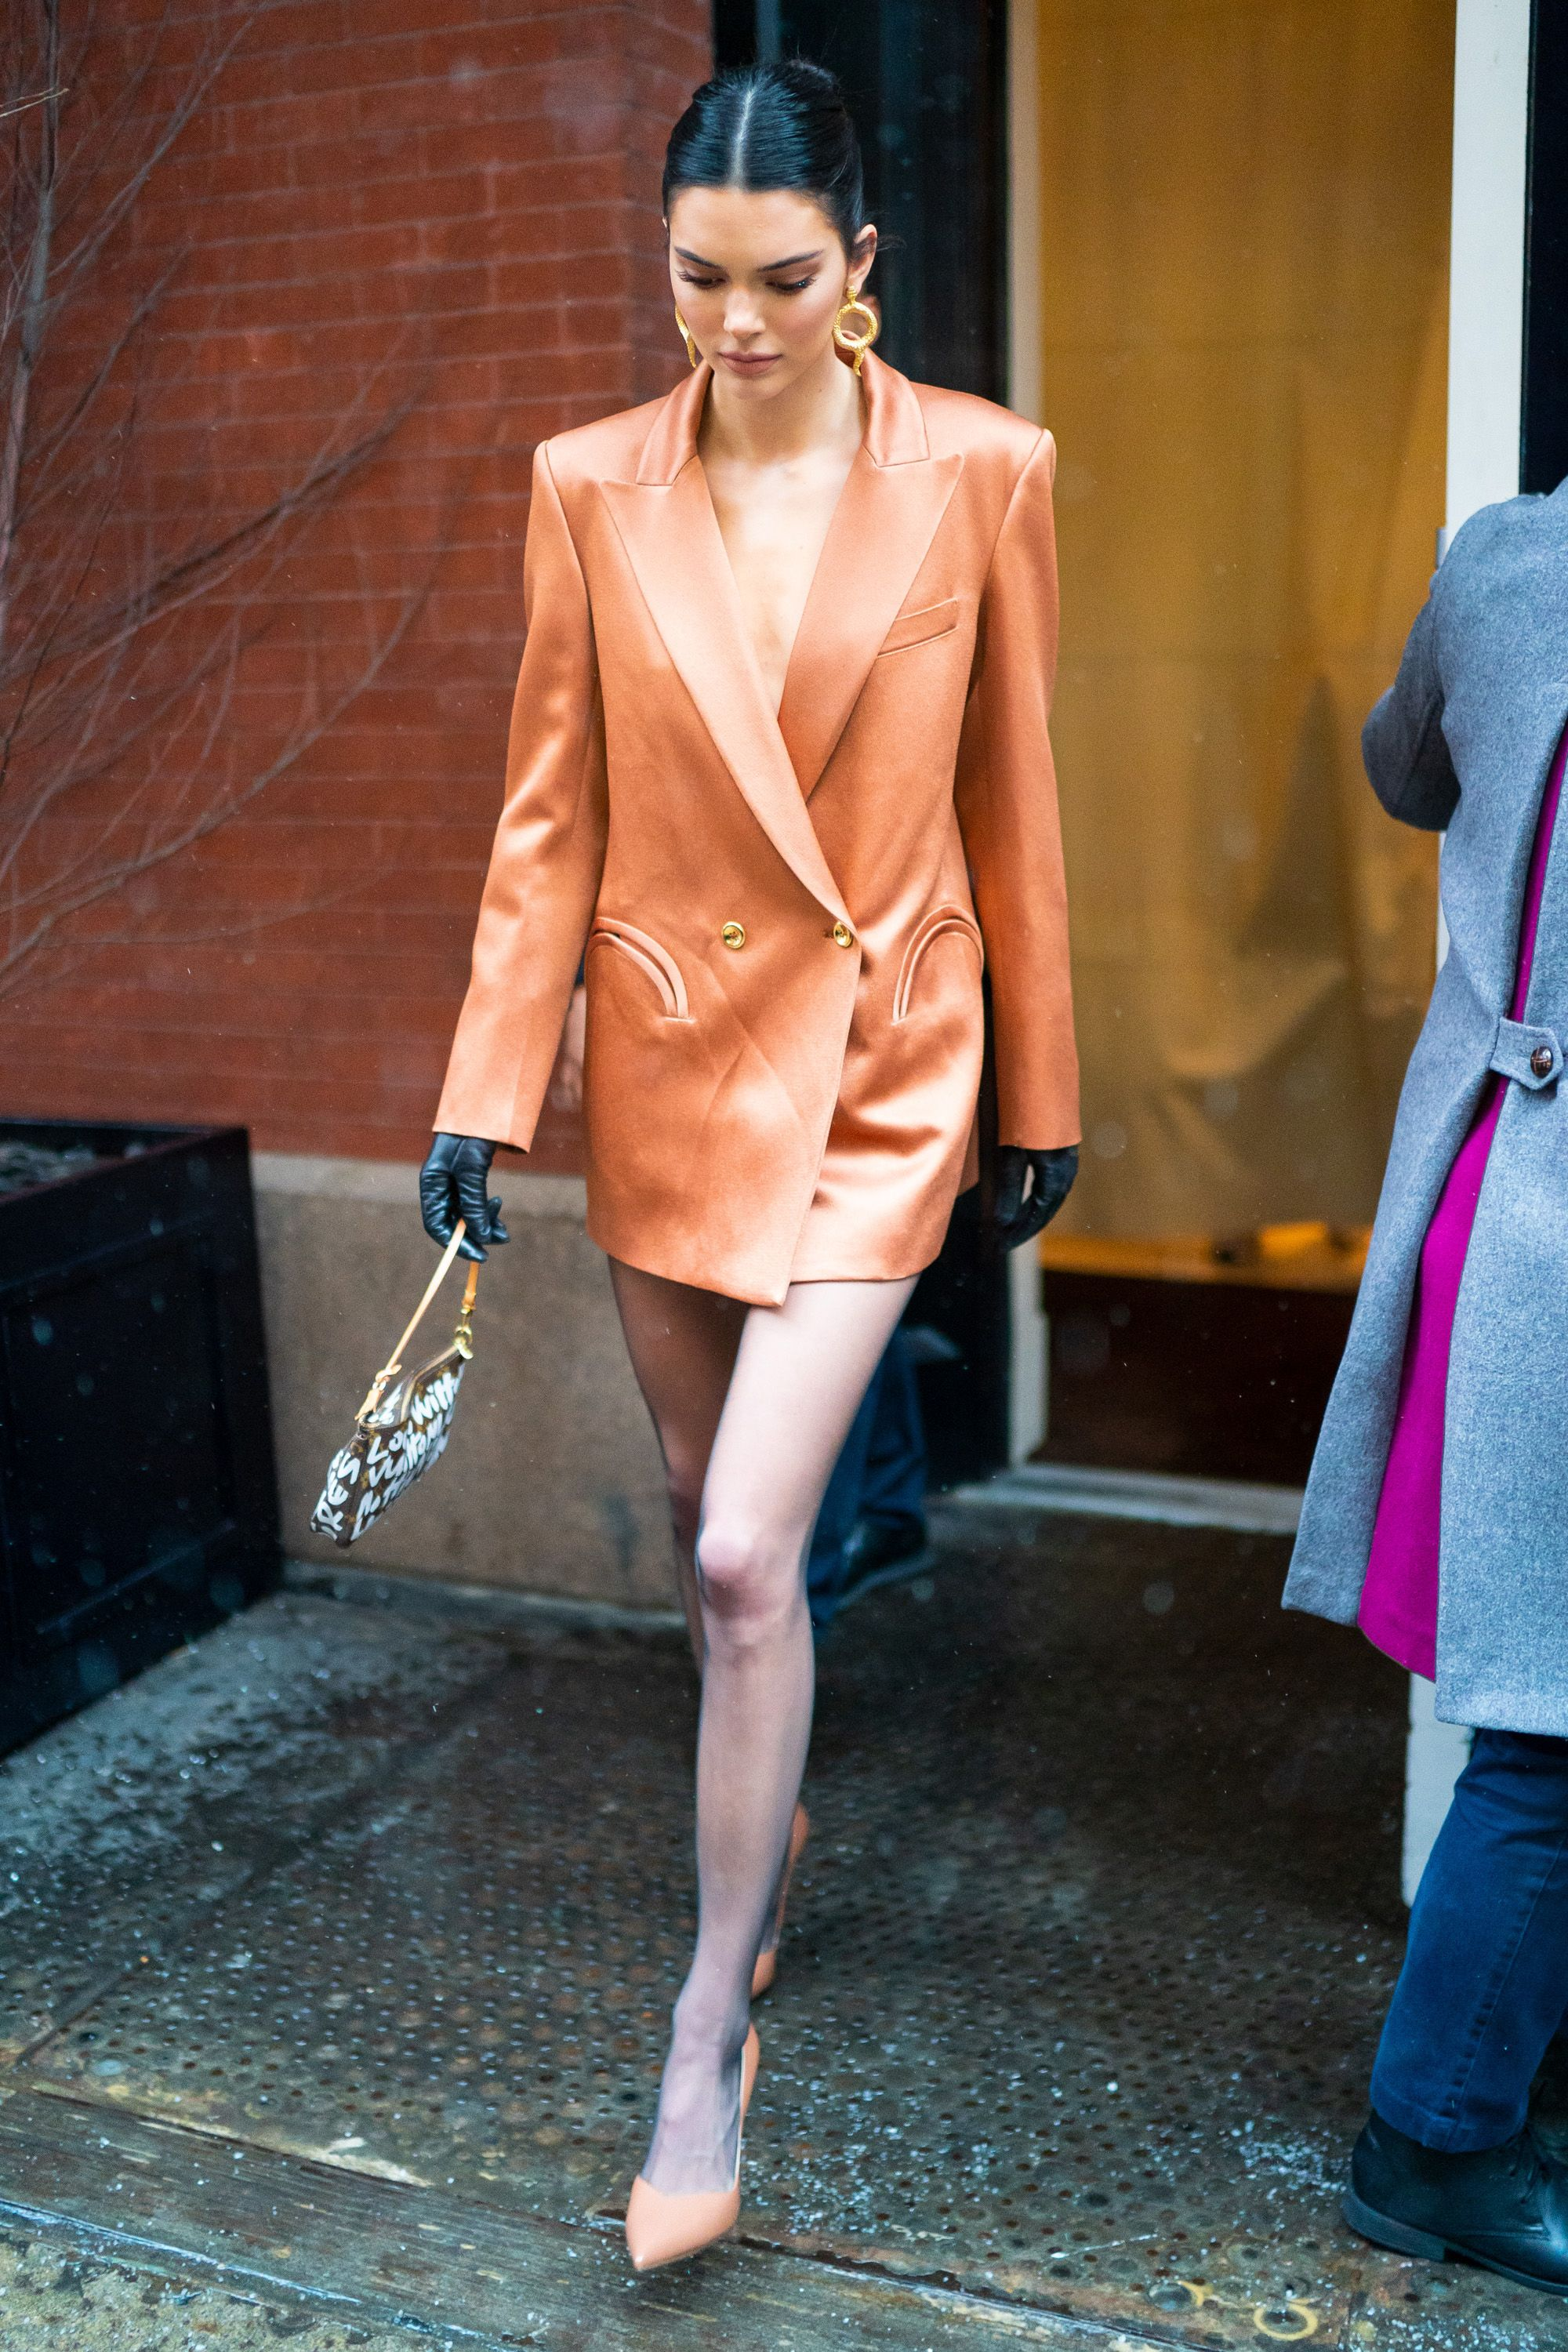 February 12, 2019 I will only wear blazer dresses from now on because of Kendall Jenner. She looked smart, sophisticated, and daring in this structured orange Blazé Milano number.